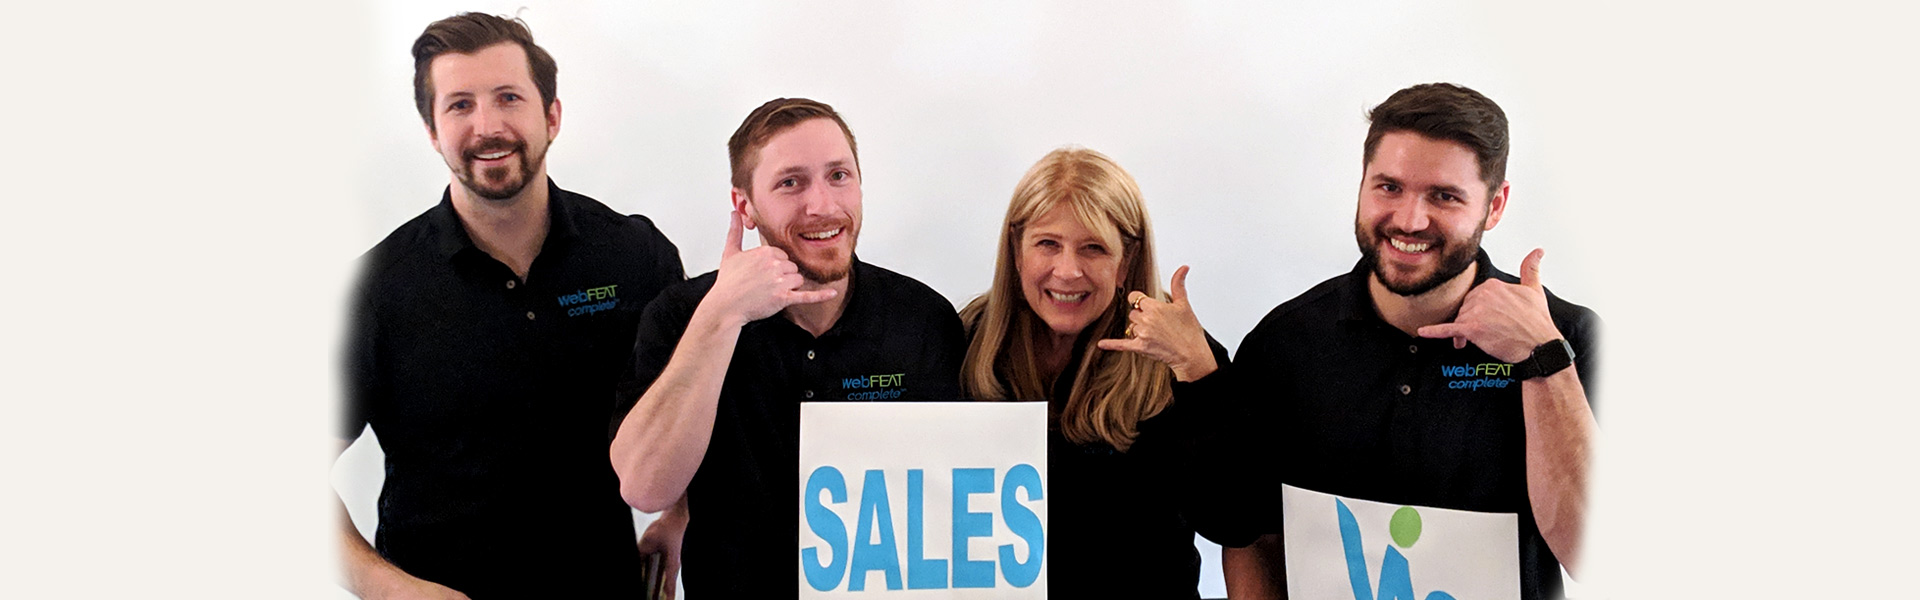 Contact the webFEAT Complete Sales Team